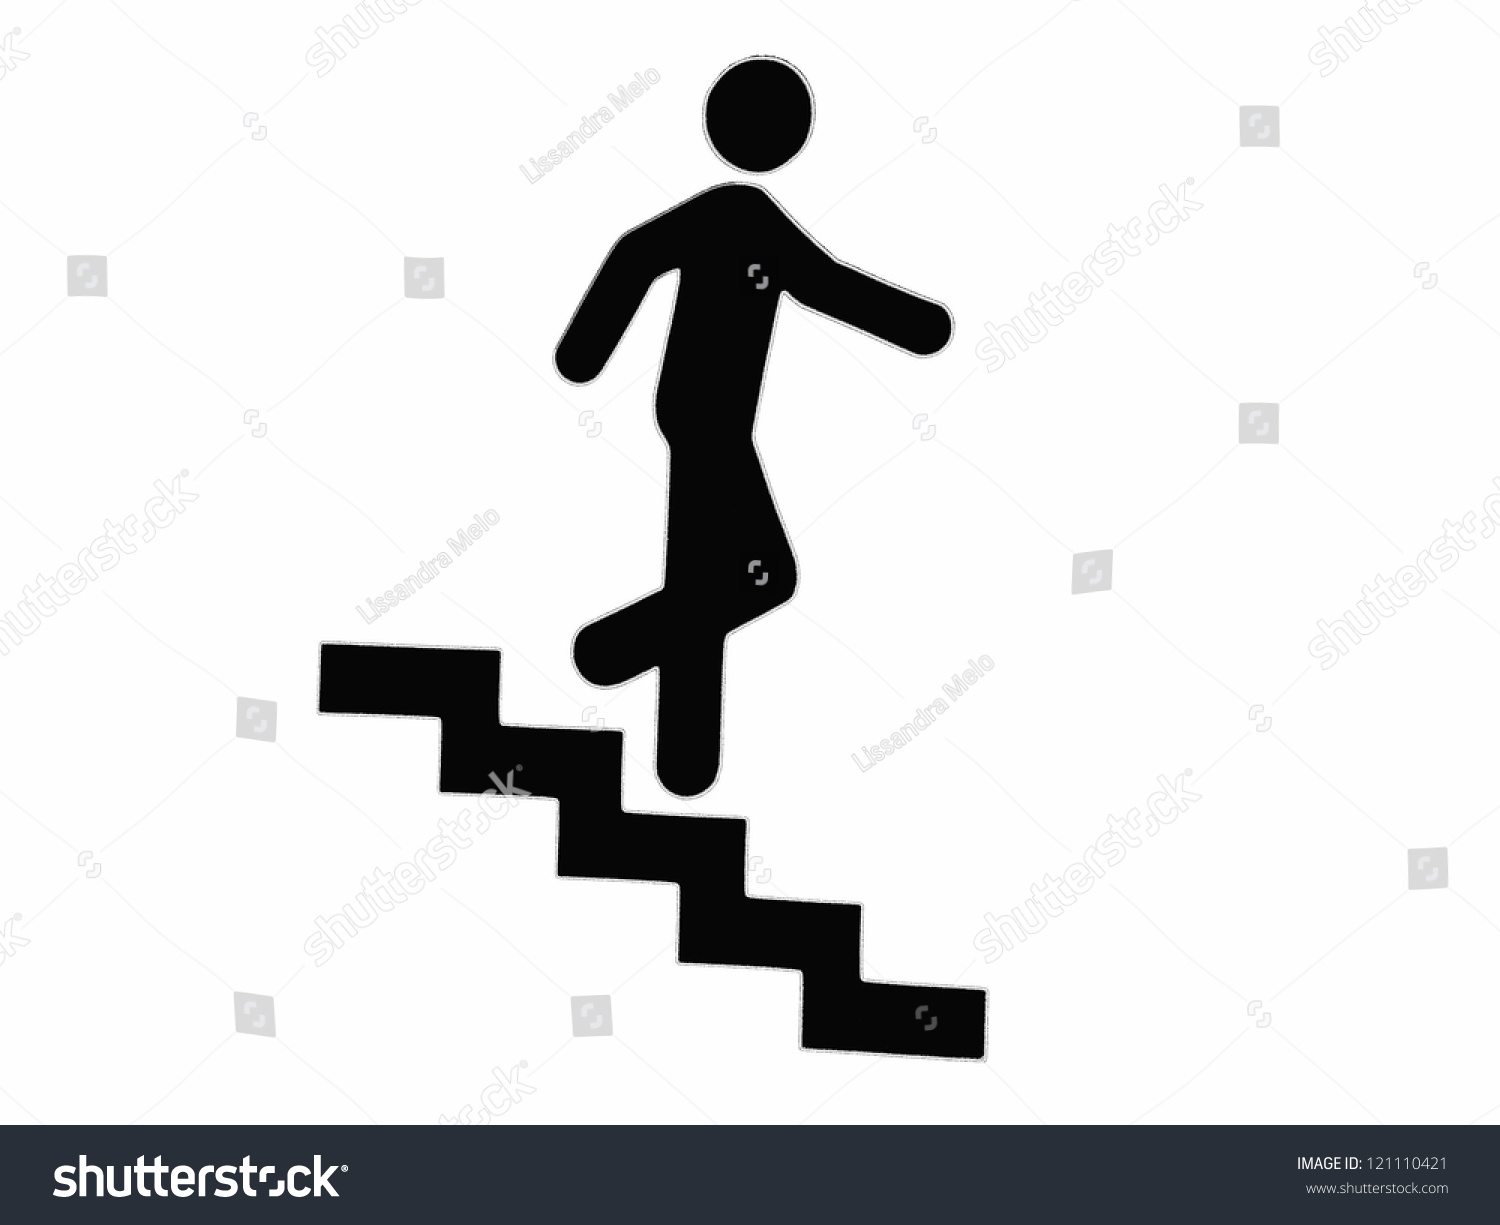 Falling Bioshock Infinite Irrational Games also 8717 as well Animated Stairs Clipart further Clusterfuck besides Stock Photo Icon Of Man On Stairs Sign On White Background. on cartoon person falling down